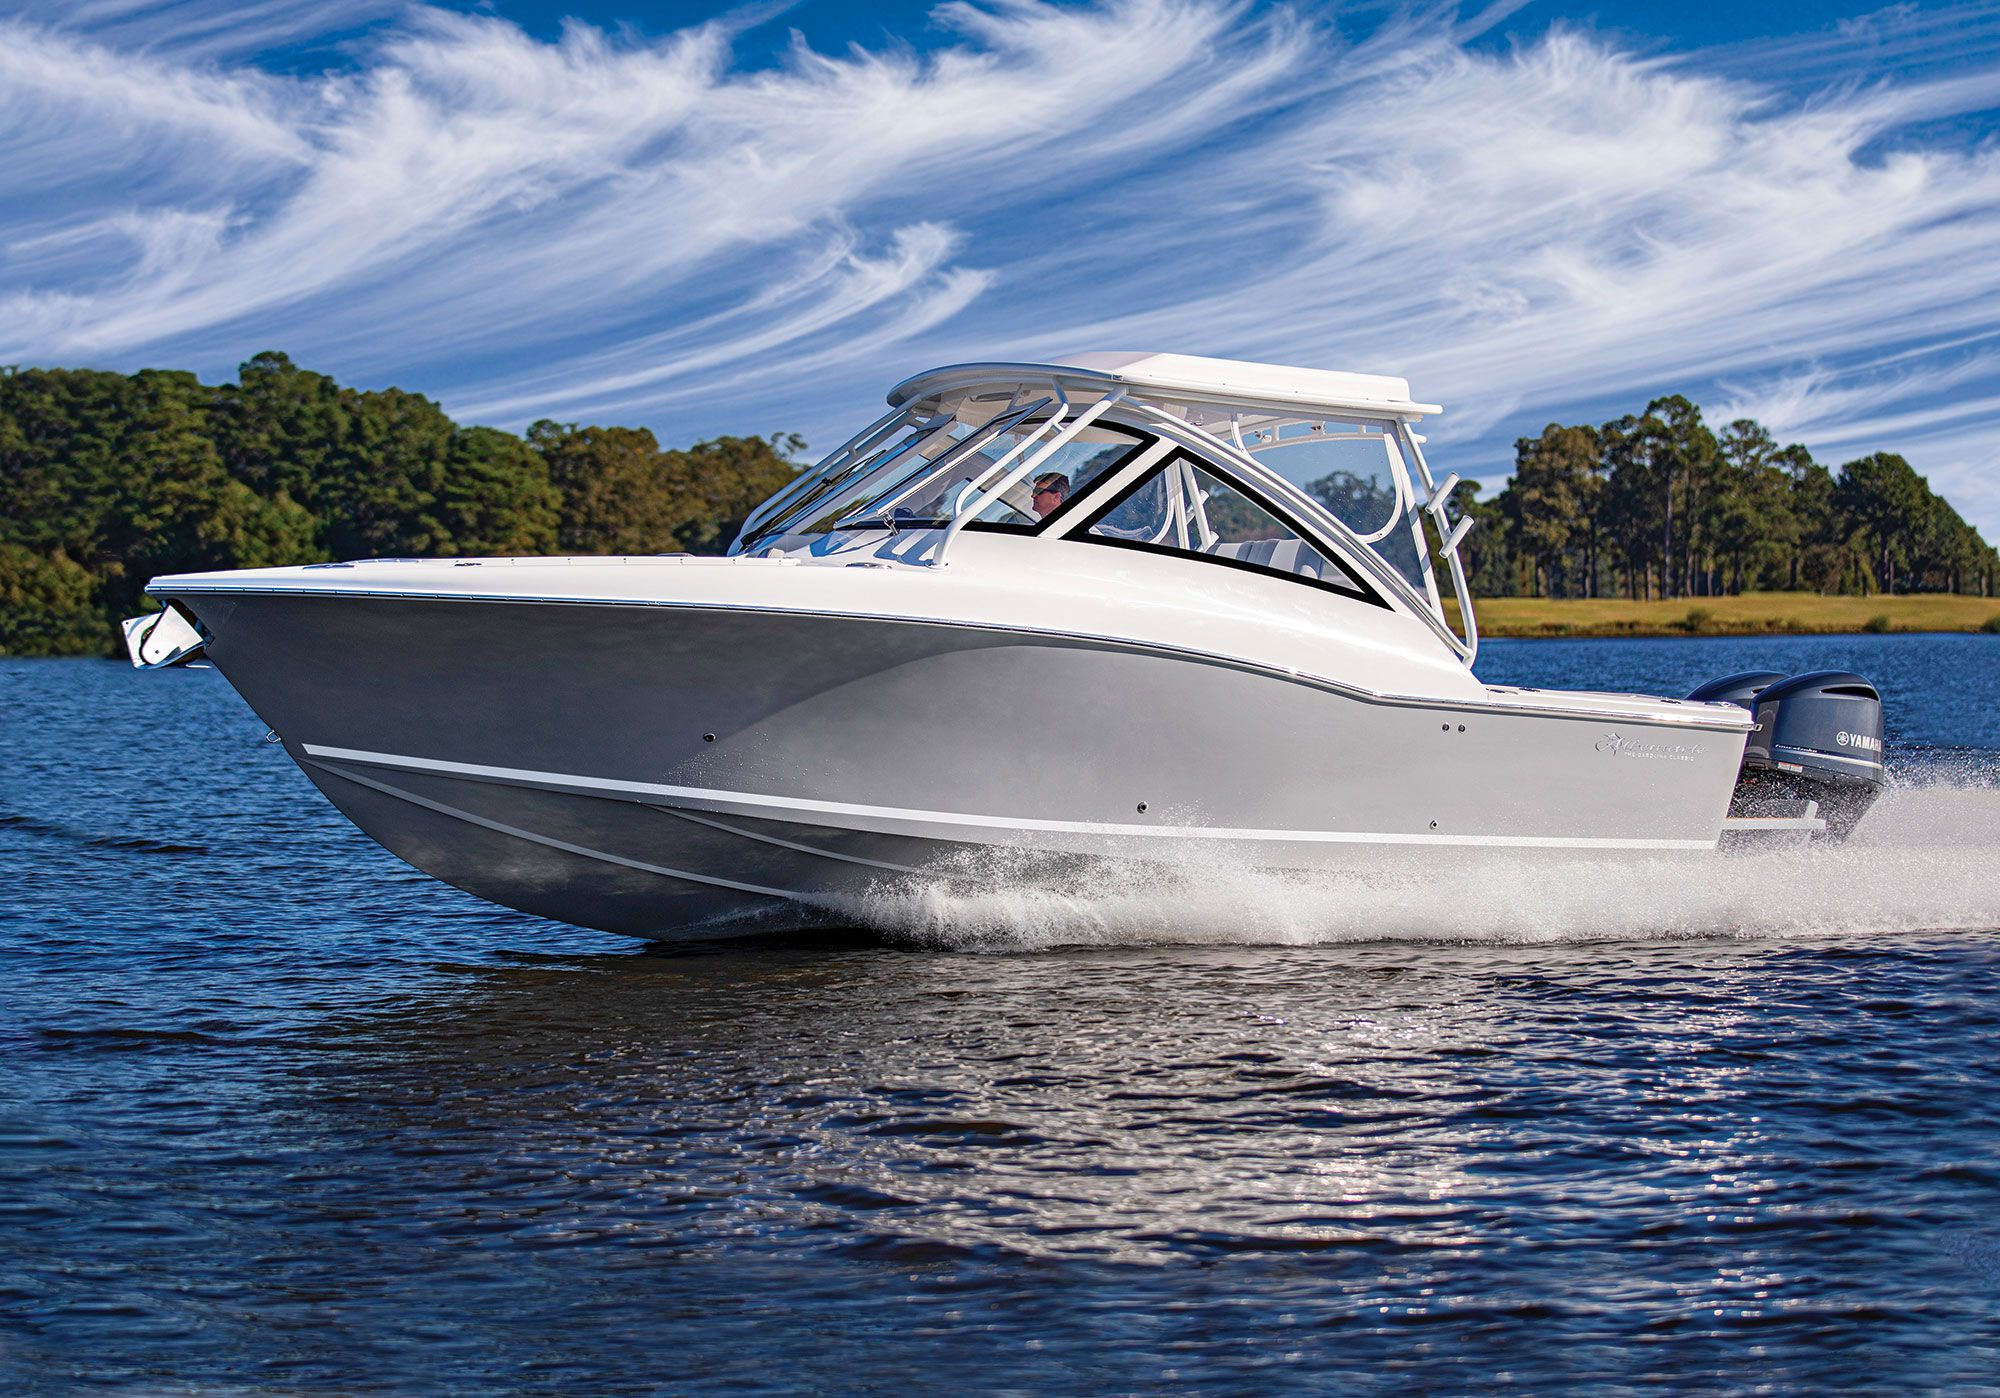 A smooth and efficient rider, the 31 DC yields 1.24 mpg cruising at 30 mph and 4,000 rpm.